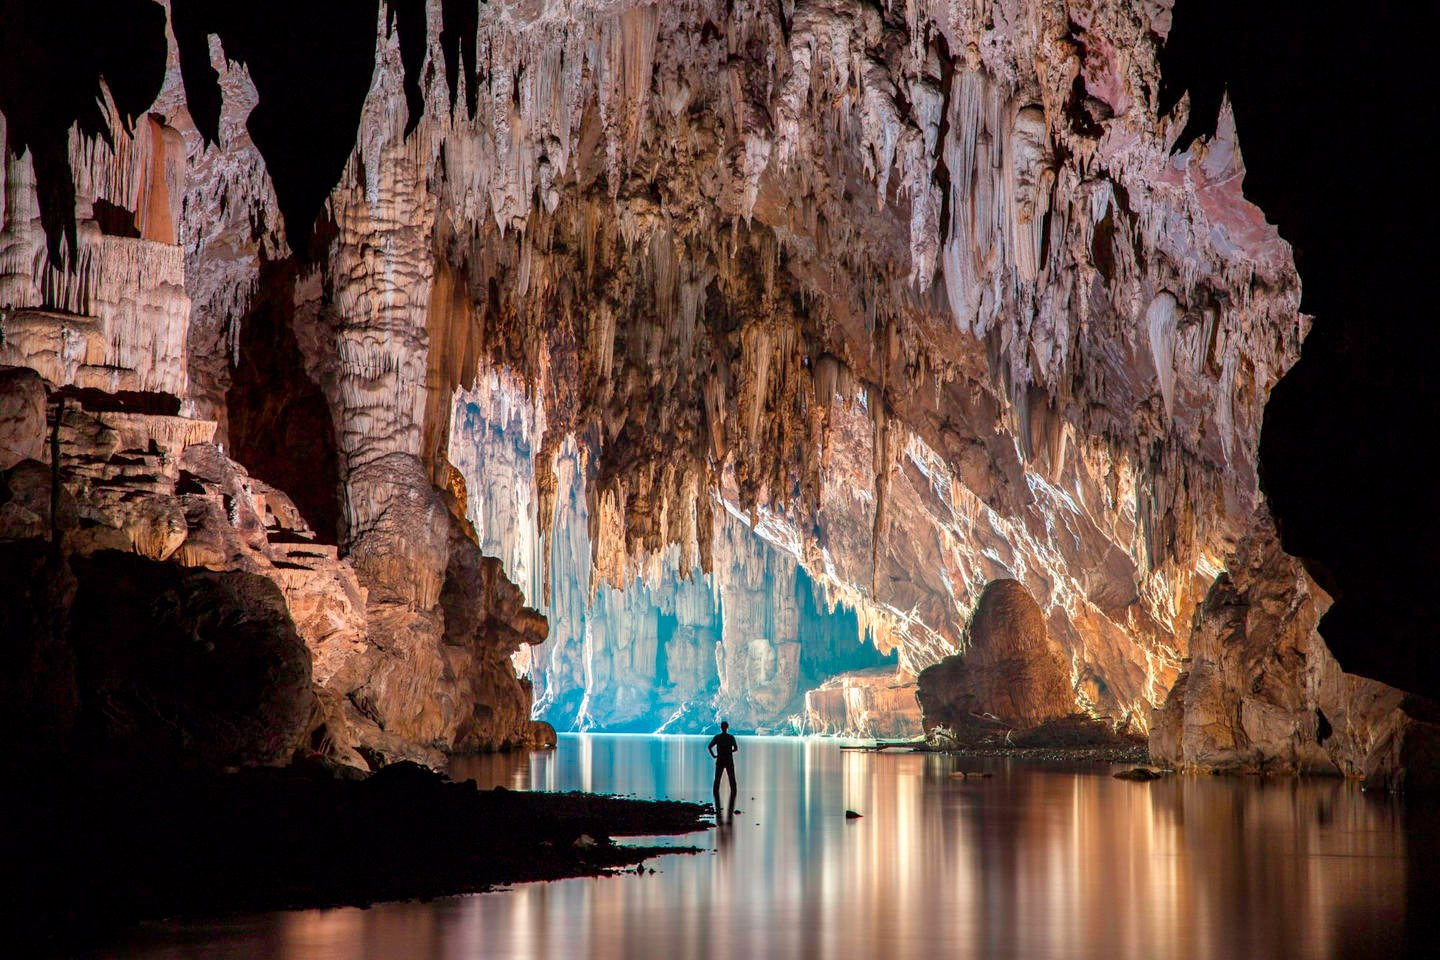 John Spies Cave Pdge cave intrior nothern Thailand